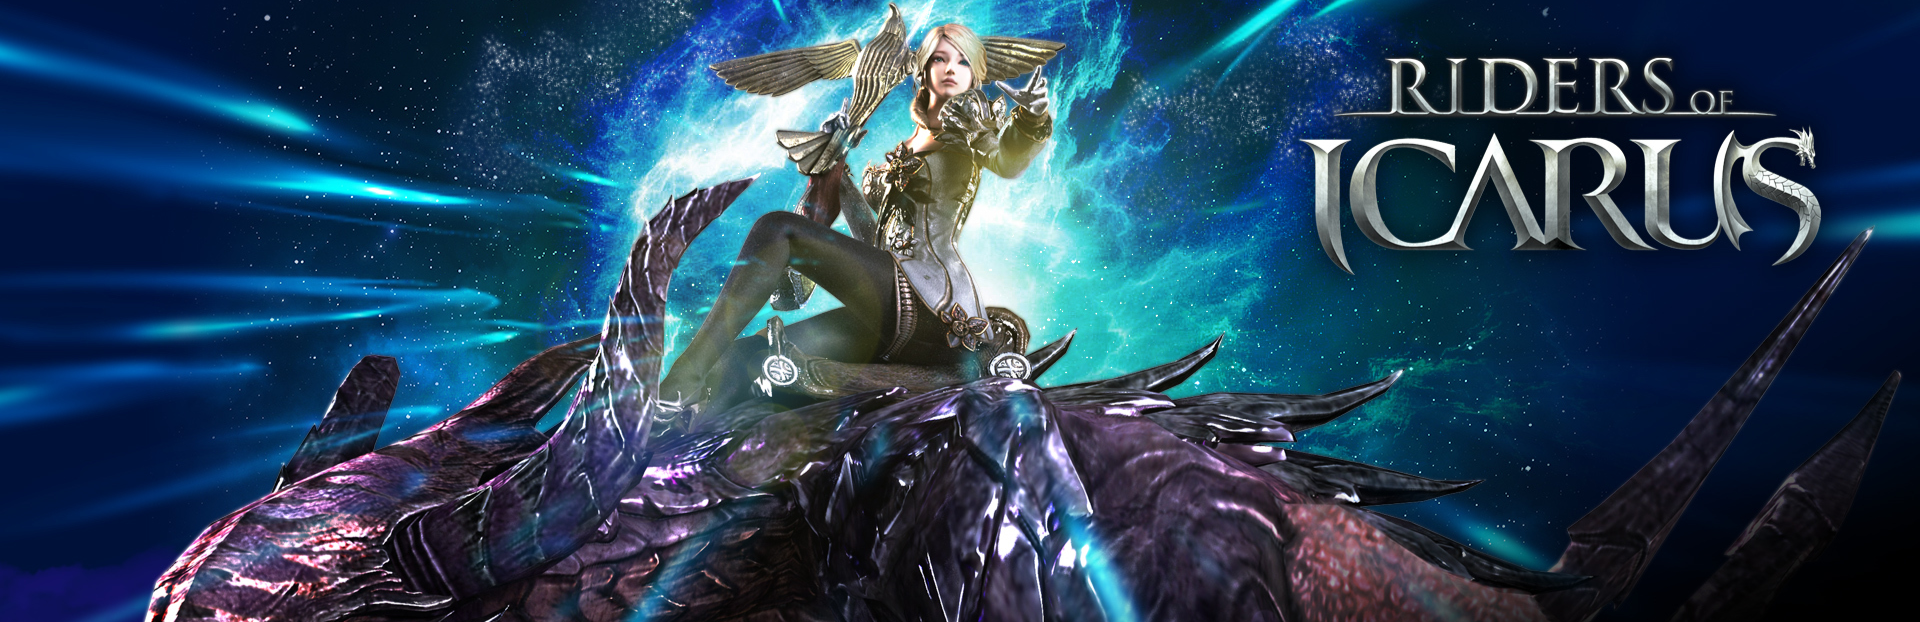 Riders Of Icarus New Server New Content New Events Steam News